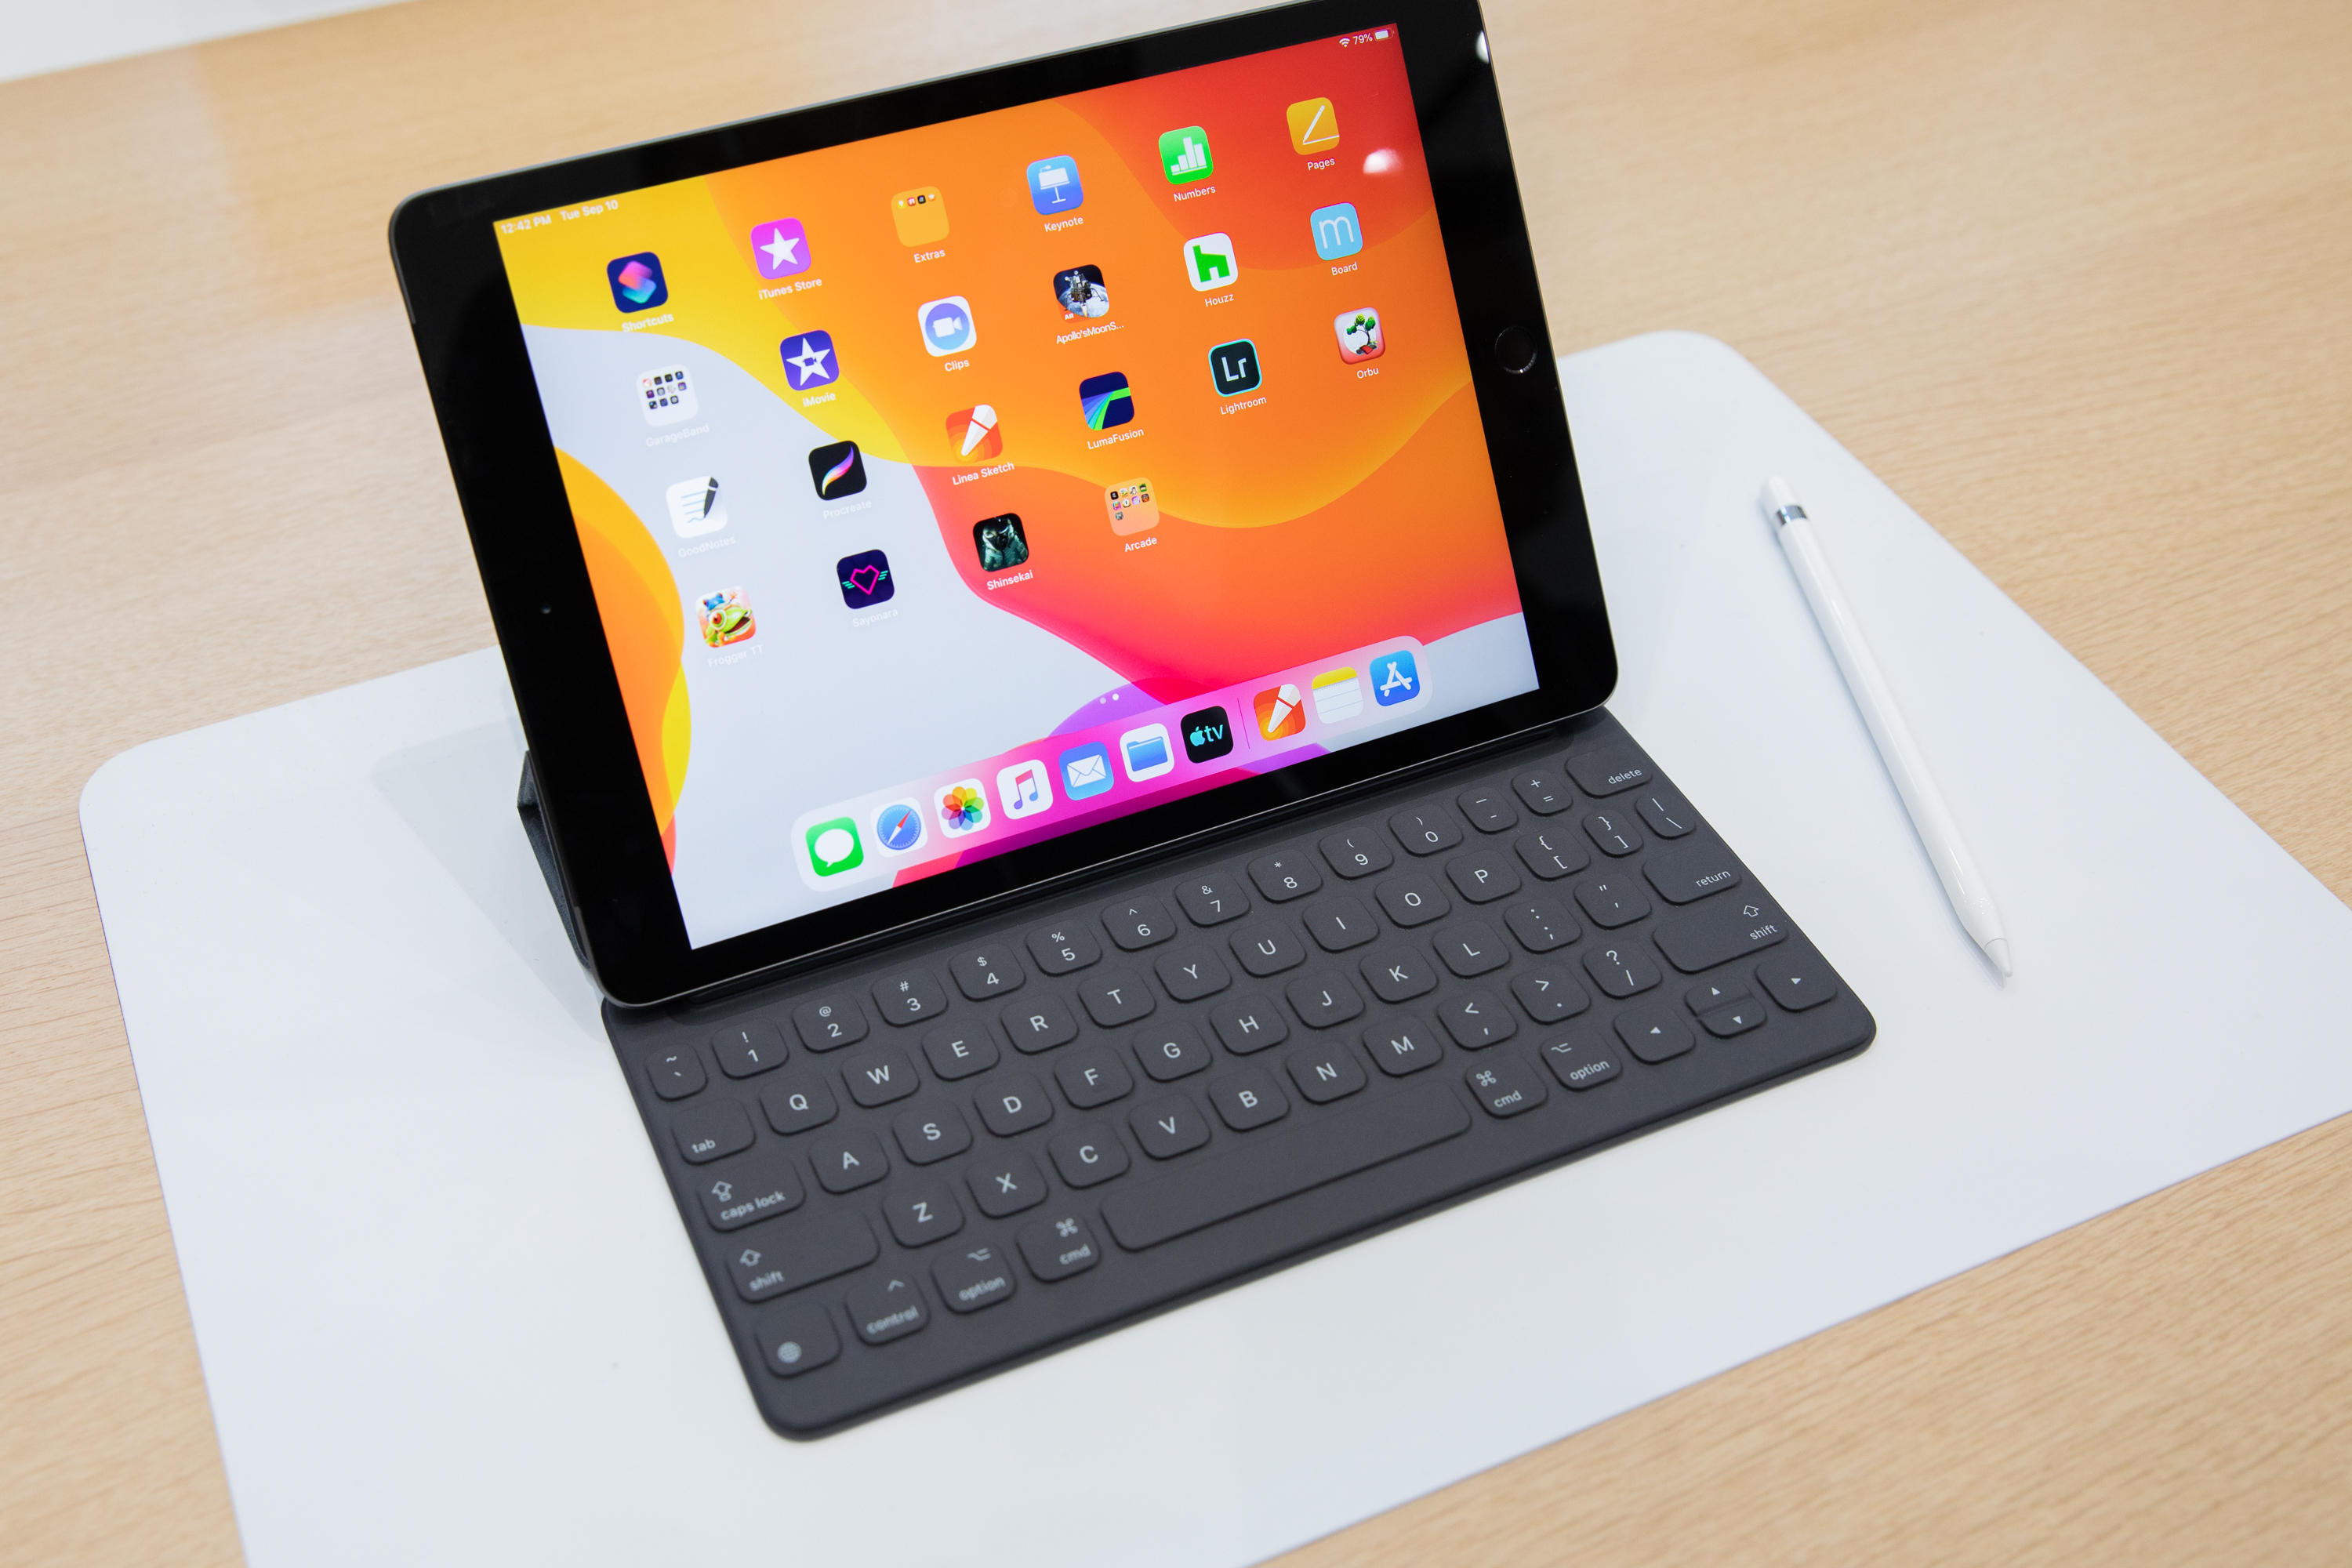 The entry-level $329 iPad now can be used with an Apple keyboard.